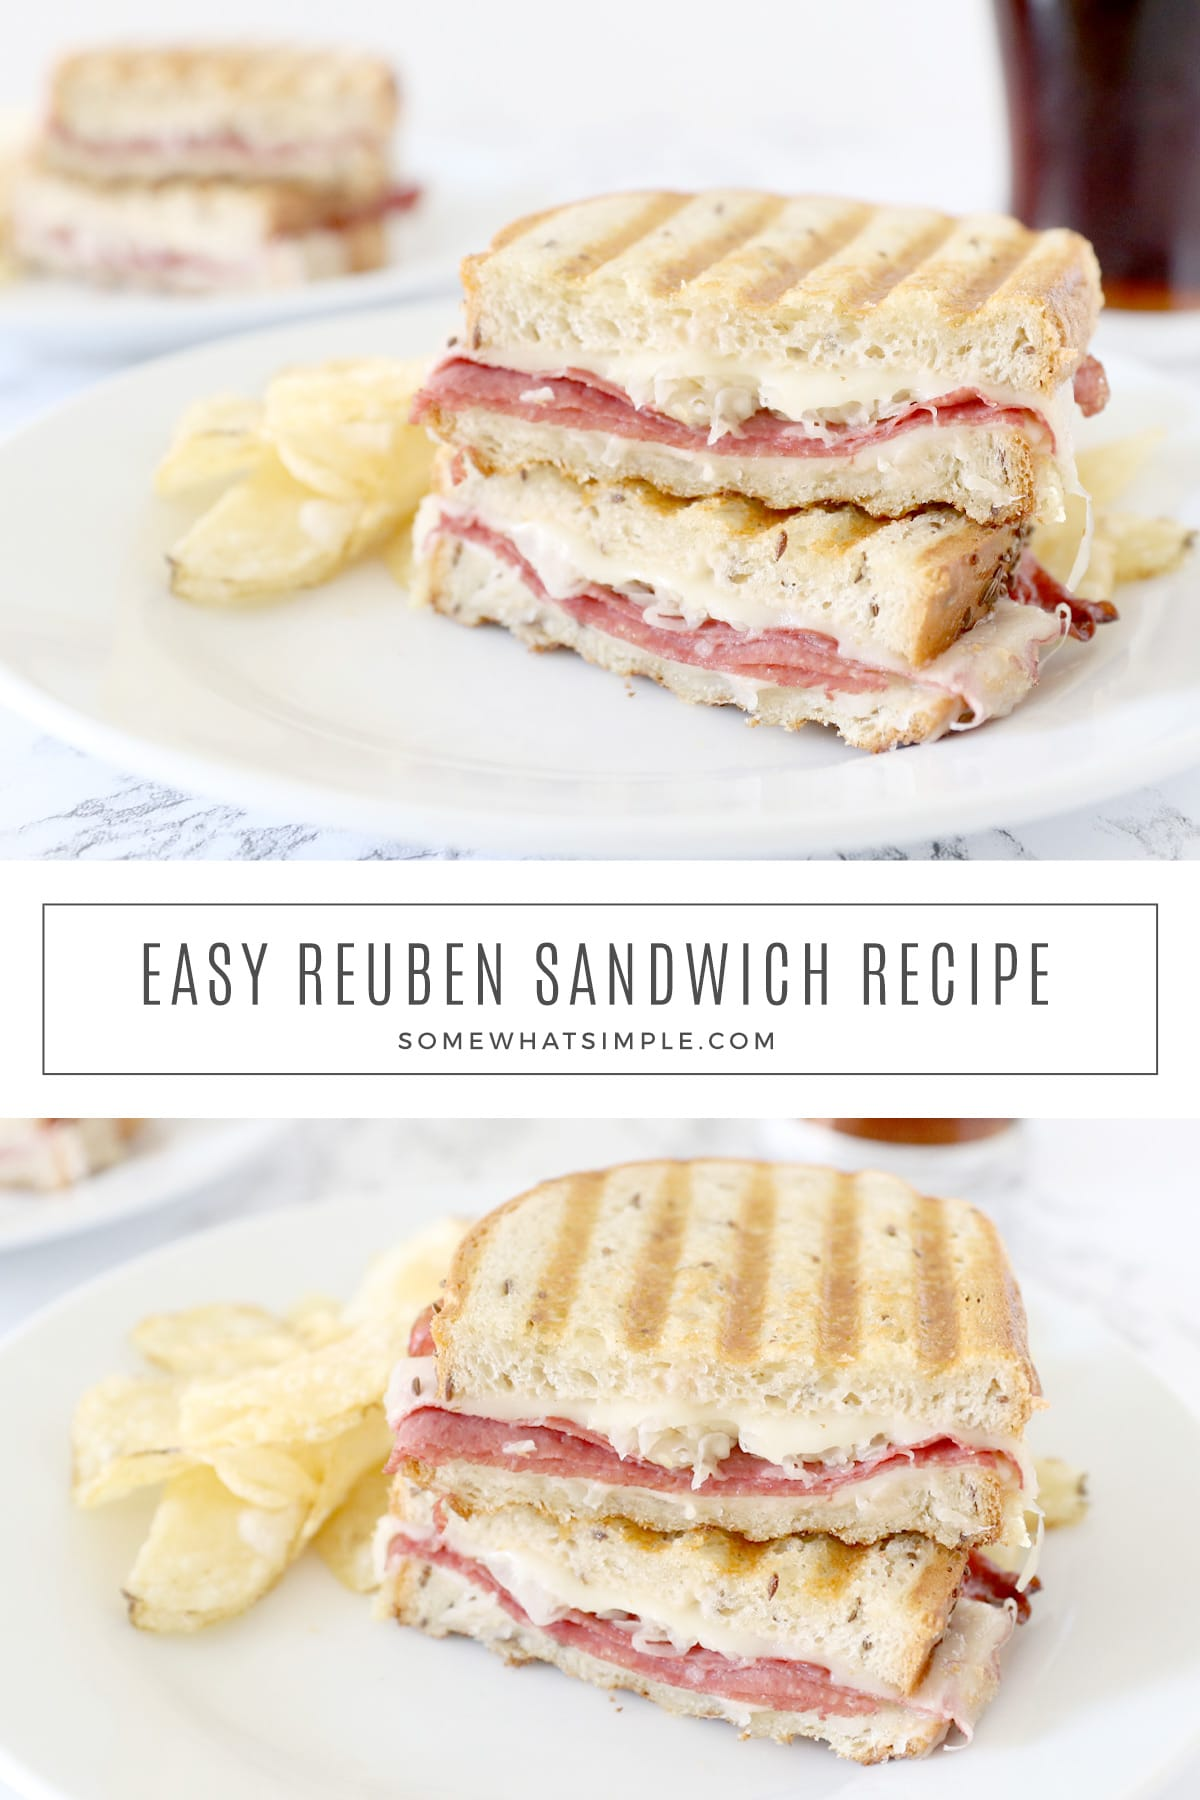 Slices of delicious rye bread piled high with corned beef, cheese, and tangy sauerkraut, topped off with thousand island dressing and grilled to perfection! This Reuben sandwich recipe is simple to make and tastes amazing! via @somewhatsimple